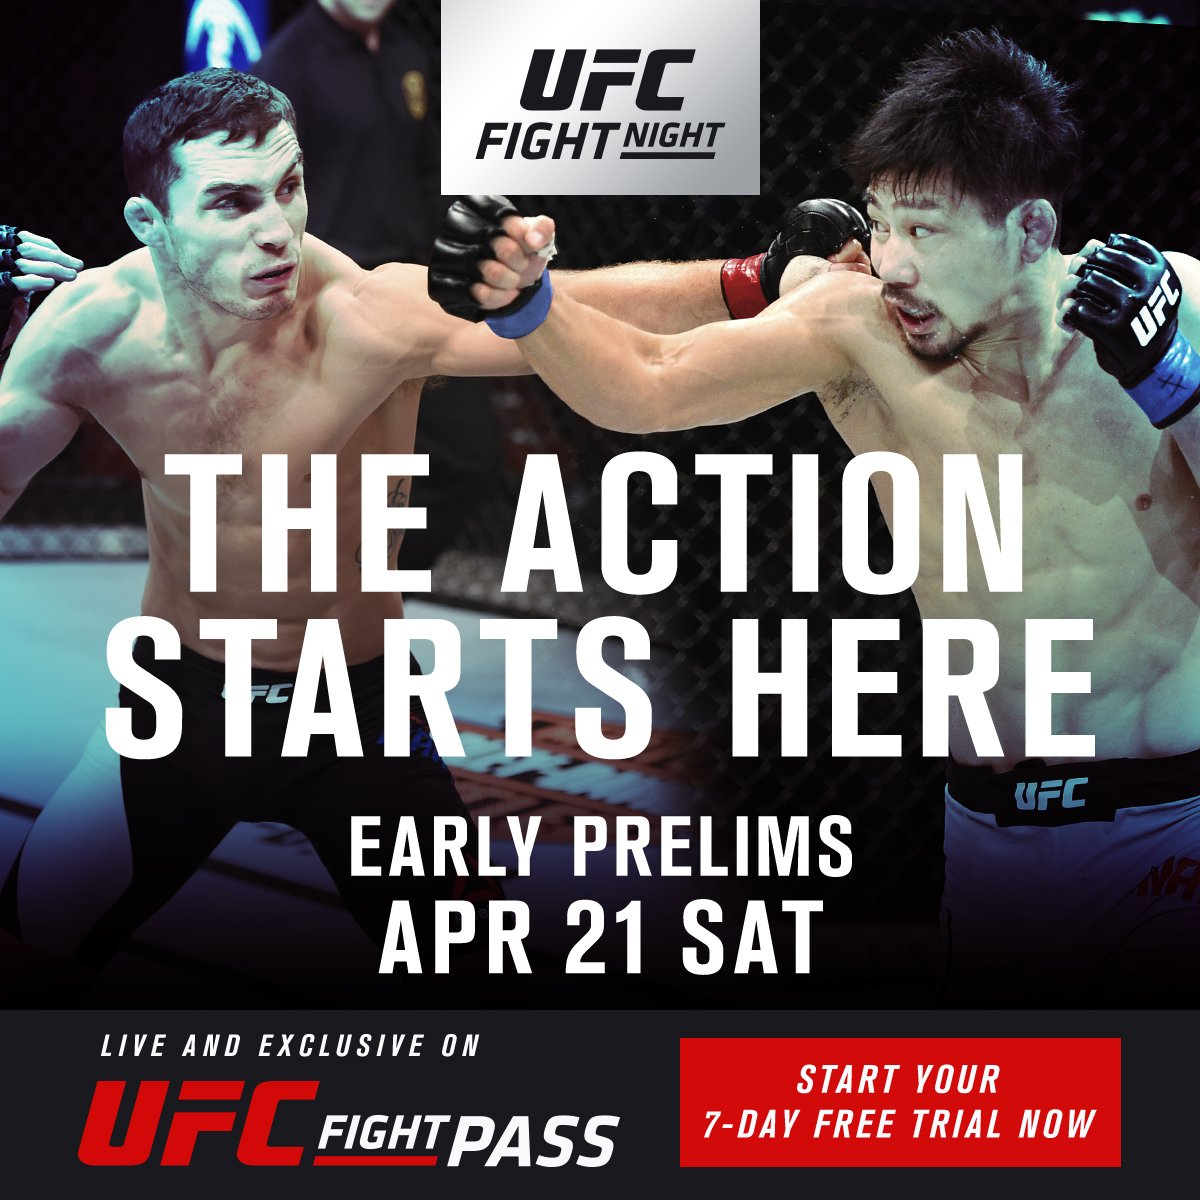 A new day, a new #UFCFIGHTPASS Featured Bout. @tmartinmma takes on @ktanakamura to kick off #UFCAC TOMORROW at 7:30PM | 4:30PM ETPT!